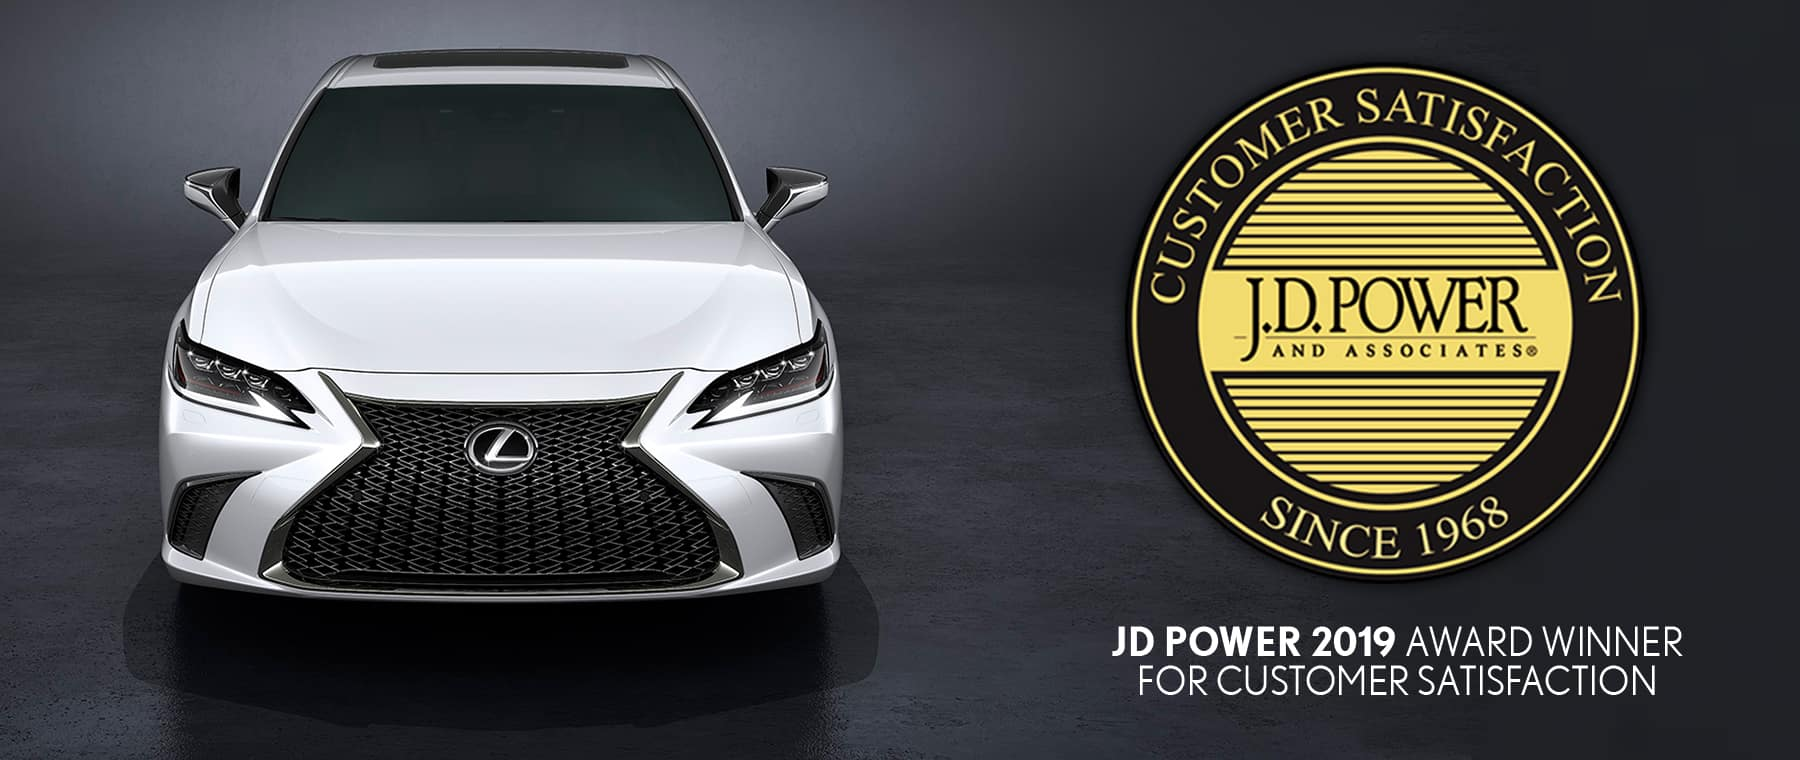 Wilde Lexus Sarasota | New and Used Lexus Dealer in Sarasota, FL